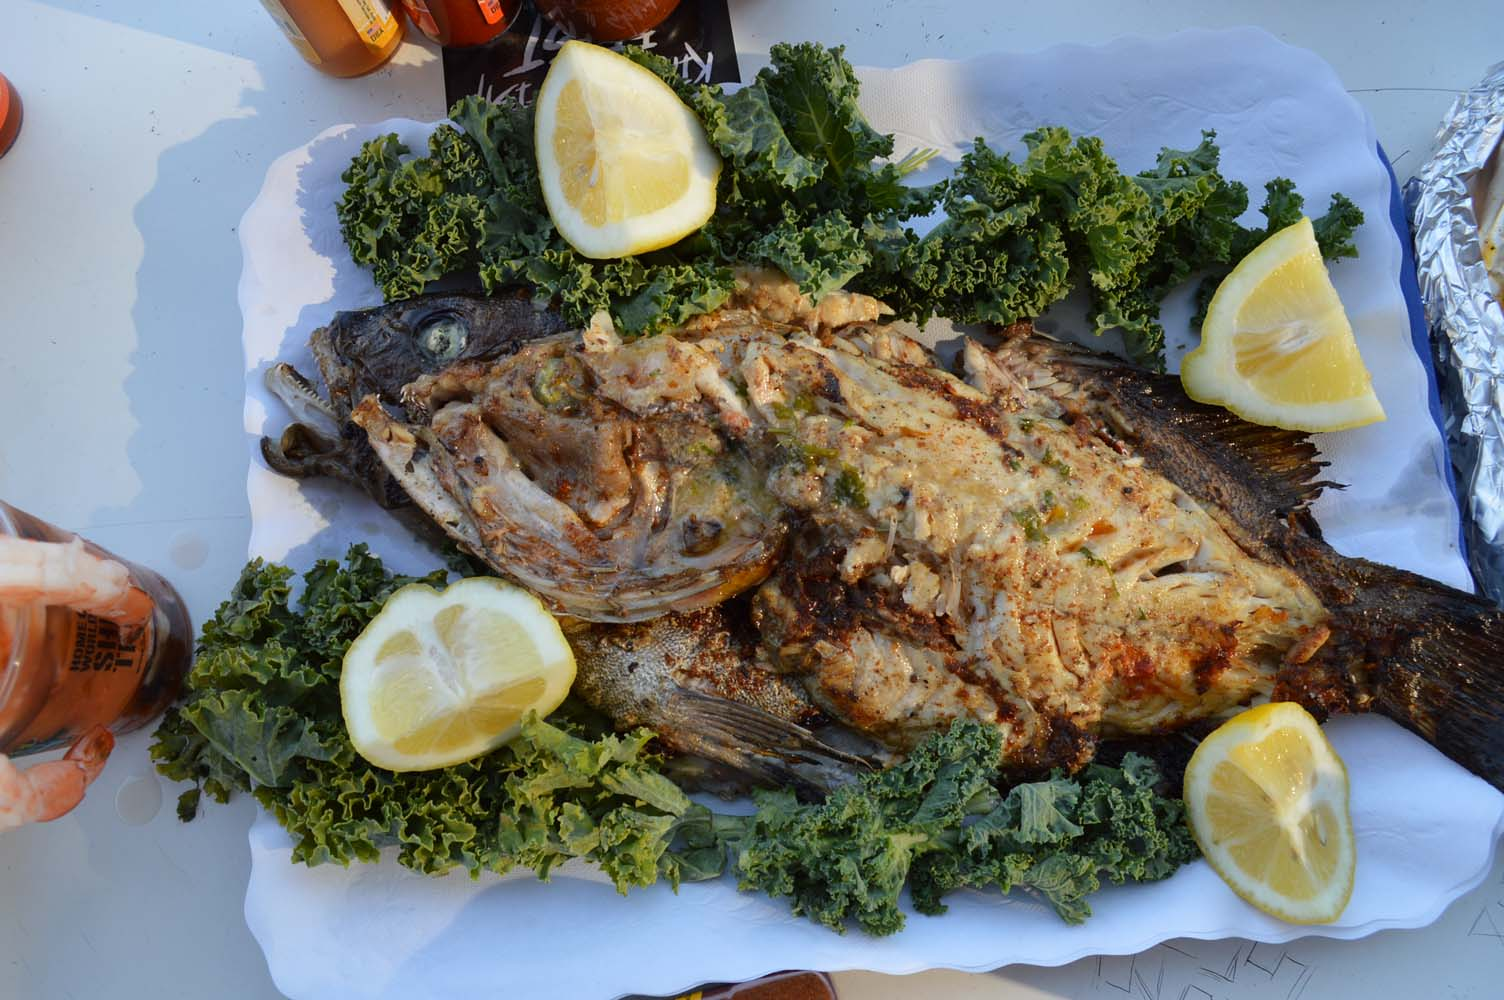 Feast on Fresh Seafood at the World Famous San Pedro Fish Market ...